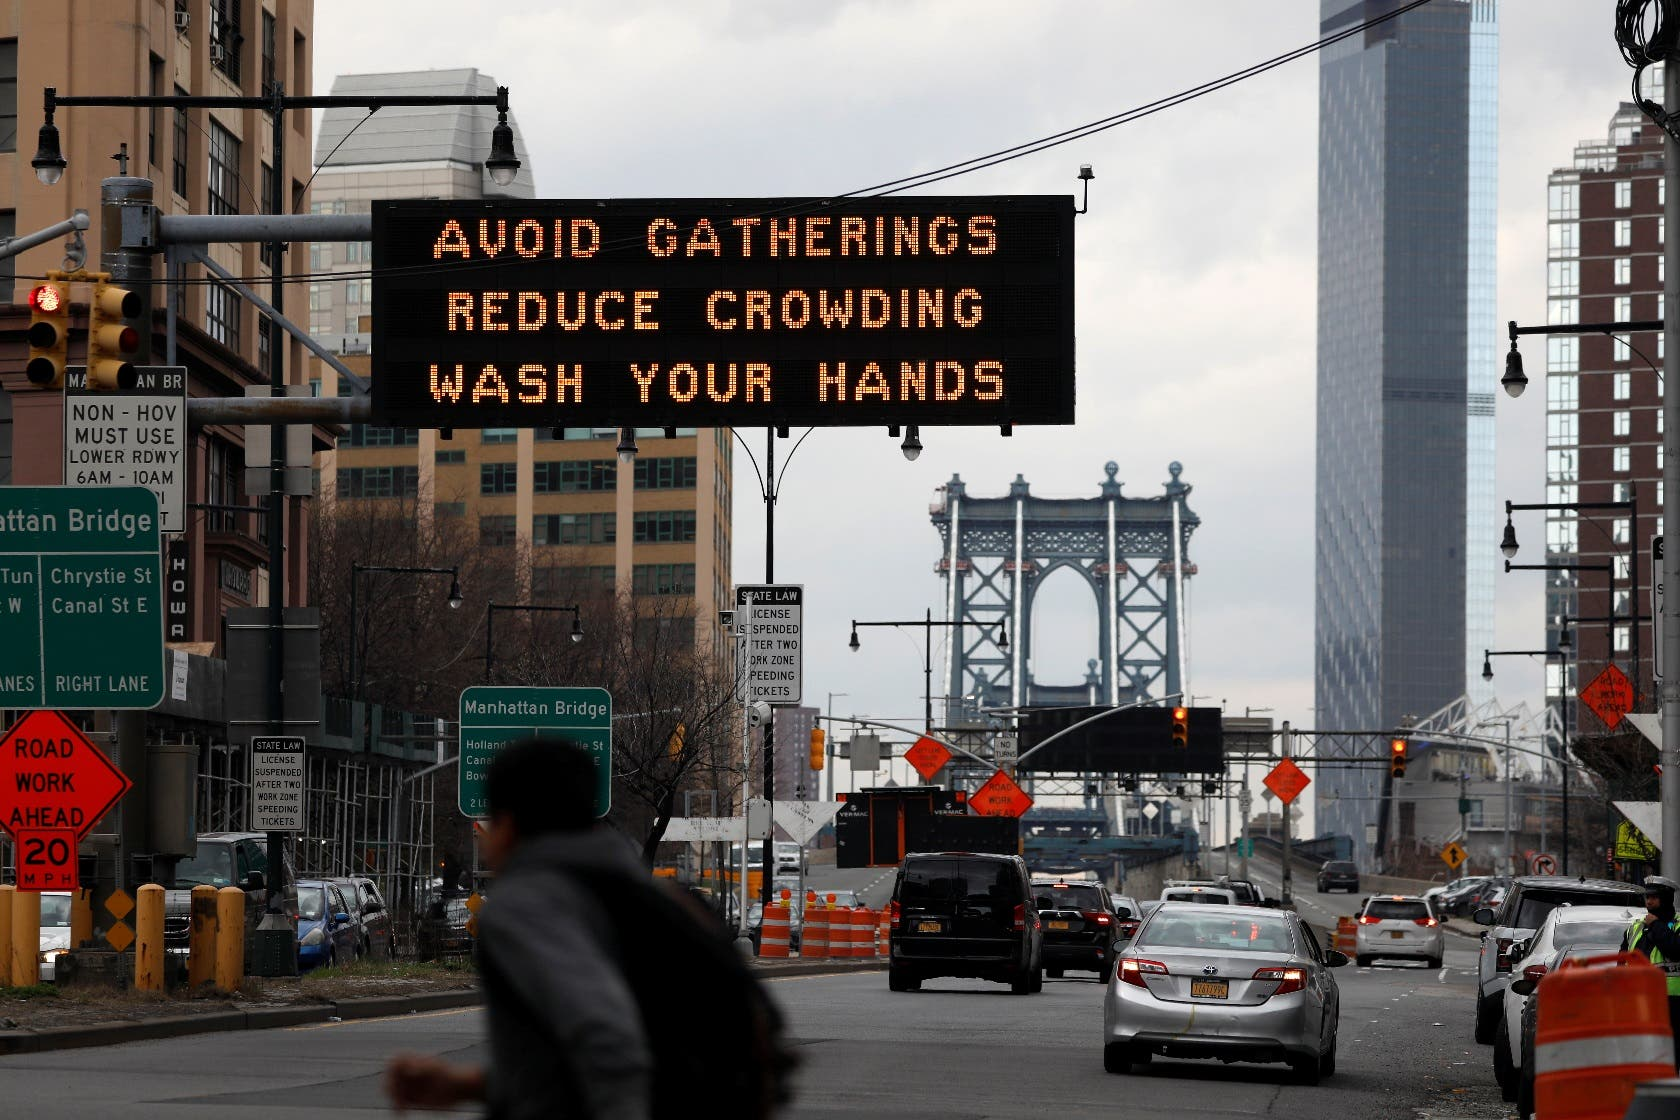 Signage regarding the coronavirus disease is displayed at the entrance to the Manhattan Bridge in the Brooklyn borough of New York City, on March 20, 2020. (Reuters)